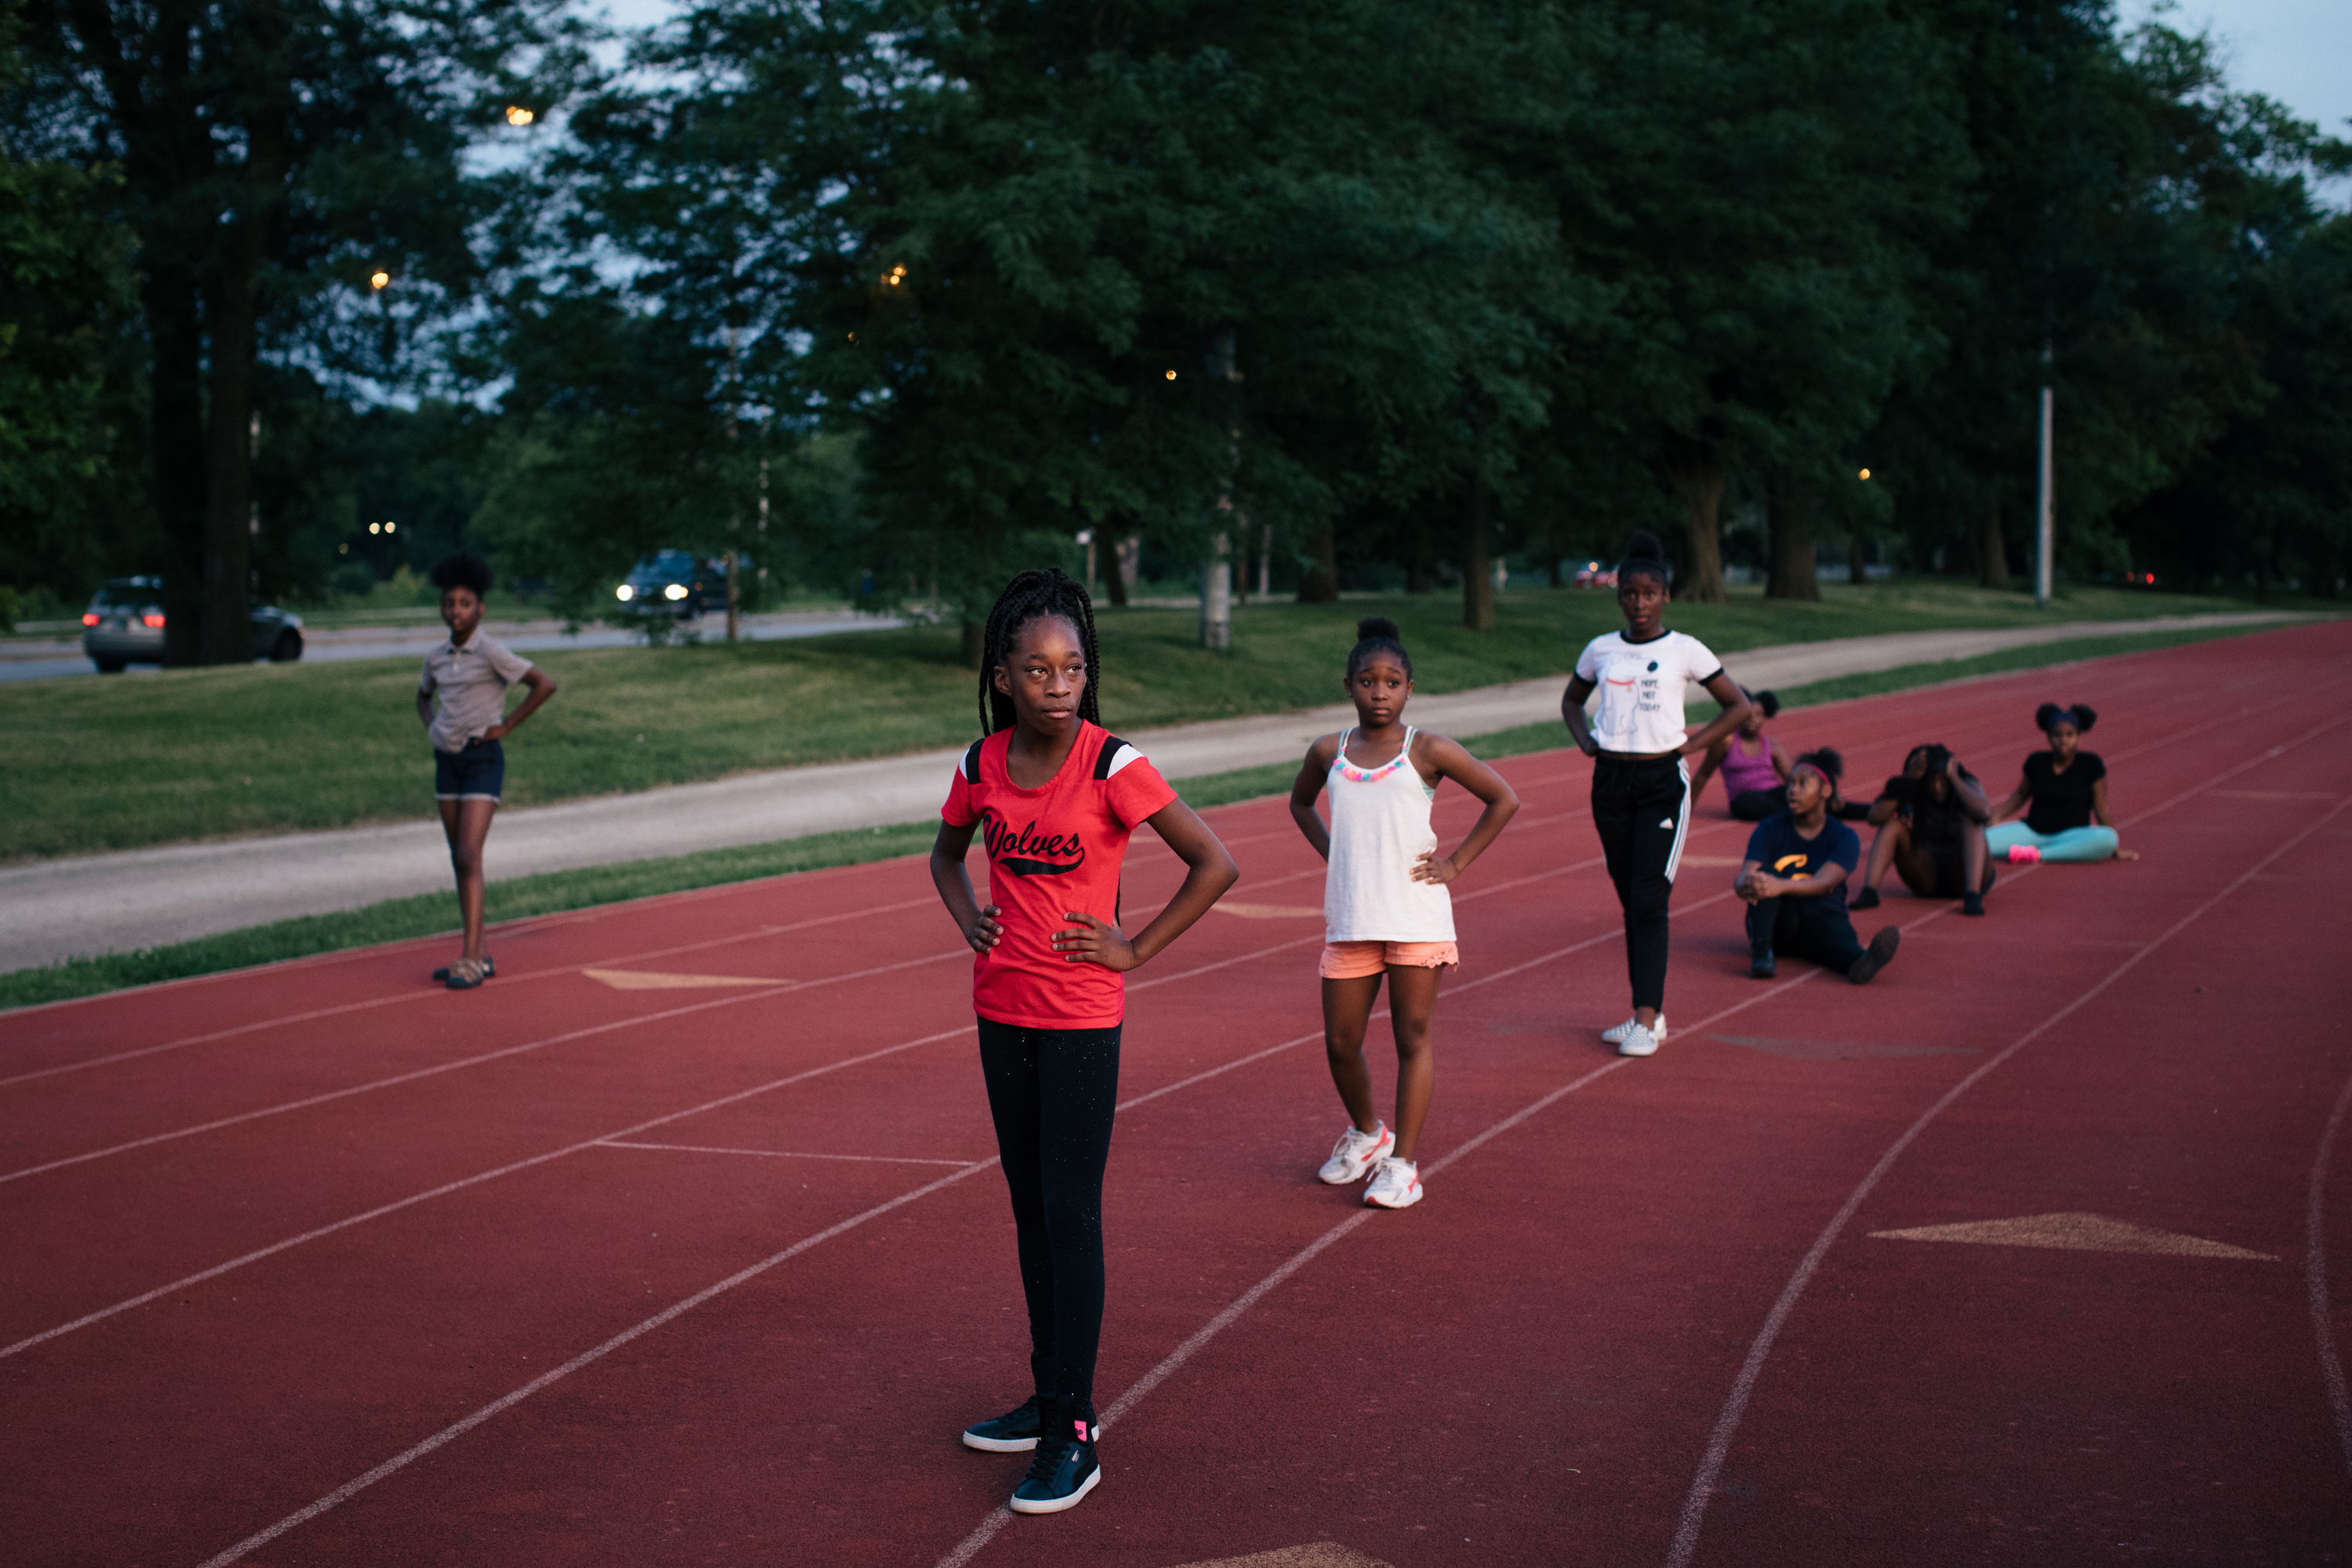 From left, Wolf Pack Football Lady Wolves dancers Deh'Shia Fisher, 12, Vickiya Fisher, 11, and Aniah Nance, 11, practice for the Bud Billiken Parade, an important summer event for Chicago's South Side, at the Jackson Park Football Field, where the Obama Presidential Center is planned to be built.